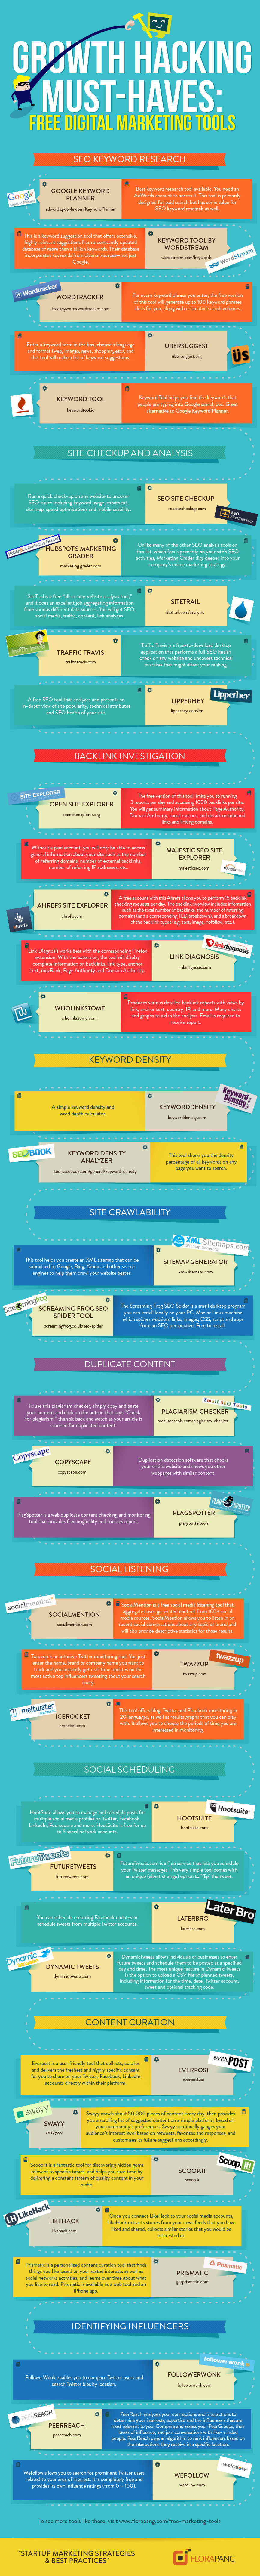 Infographic: Growth Hacking Must-Haves: Free Digital Marketing Tools